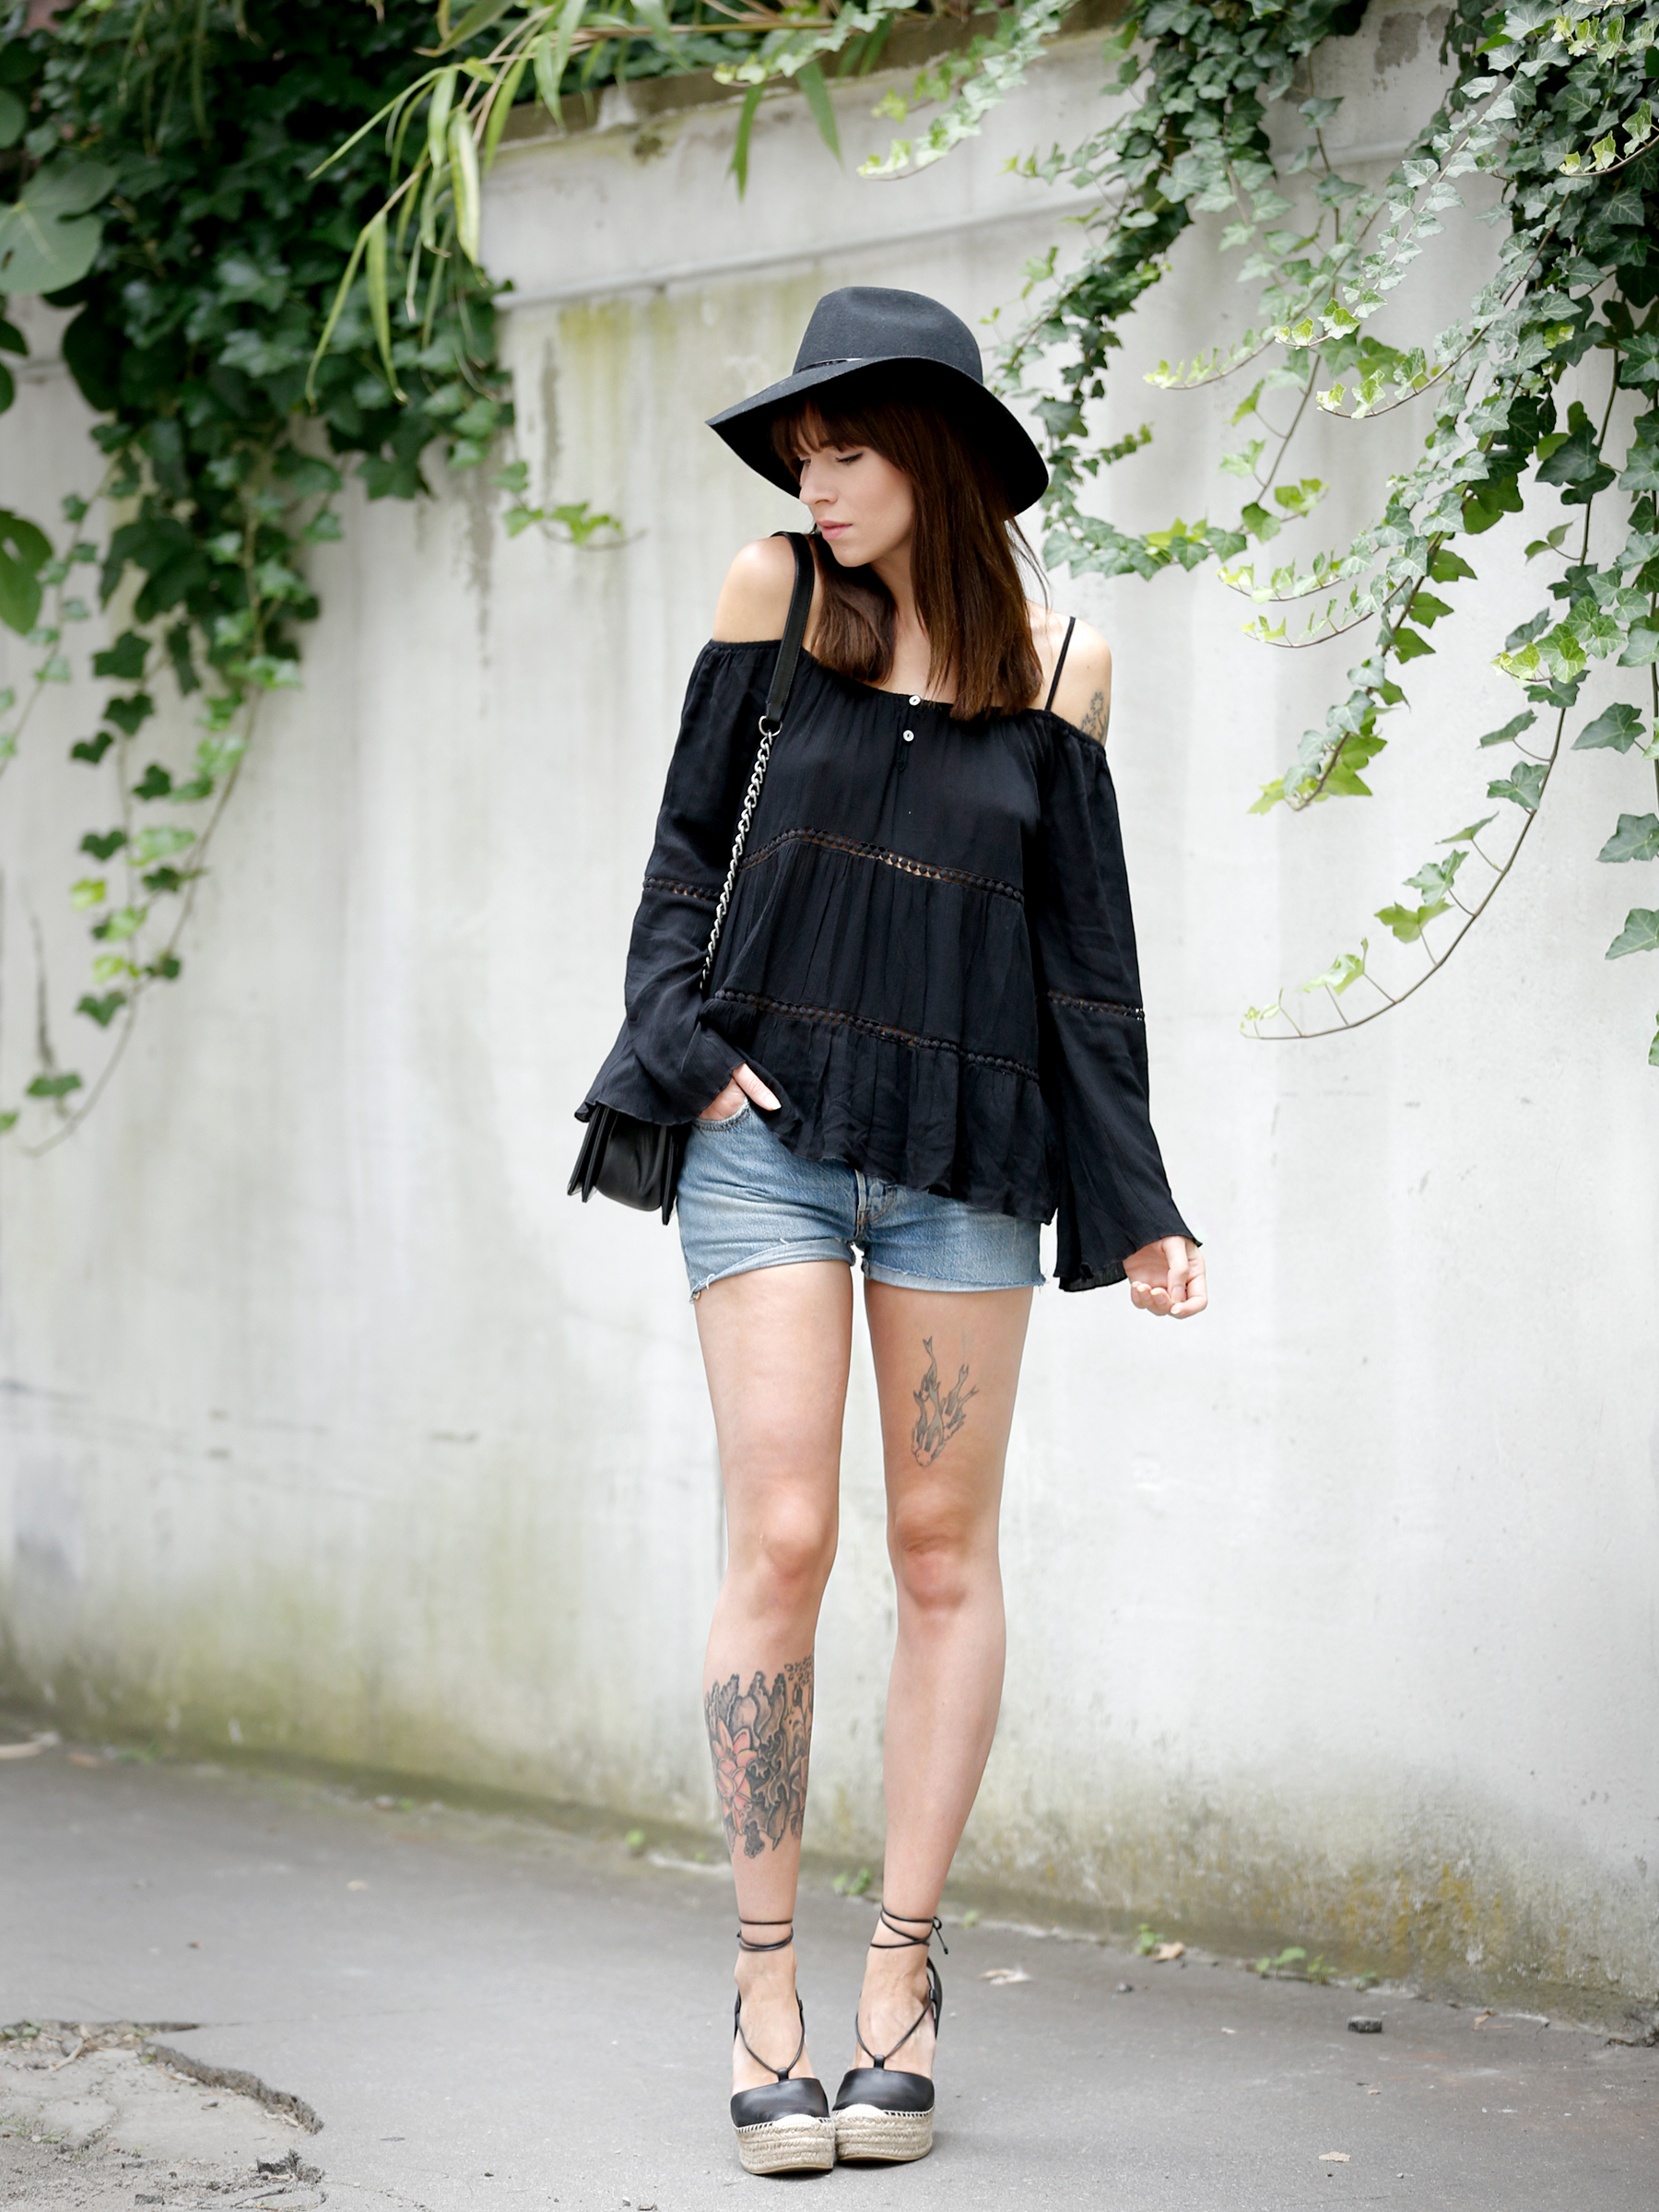 ootd outfit look lookbook levi'sw shorts denim off shoulder hippie black look ysl espadrilles chanel le boy bag fashionblogger germany modeblogger deutschland berlin style bloggers cats & dogs outfitblog ricarda schernus styling blogger 1